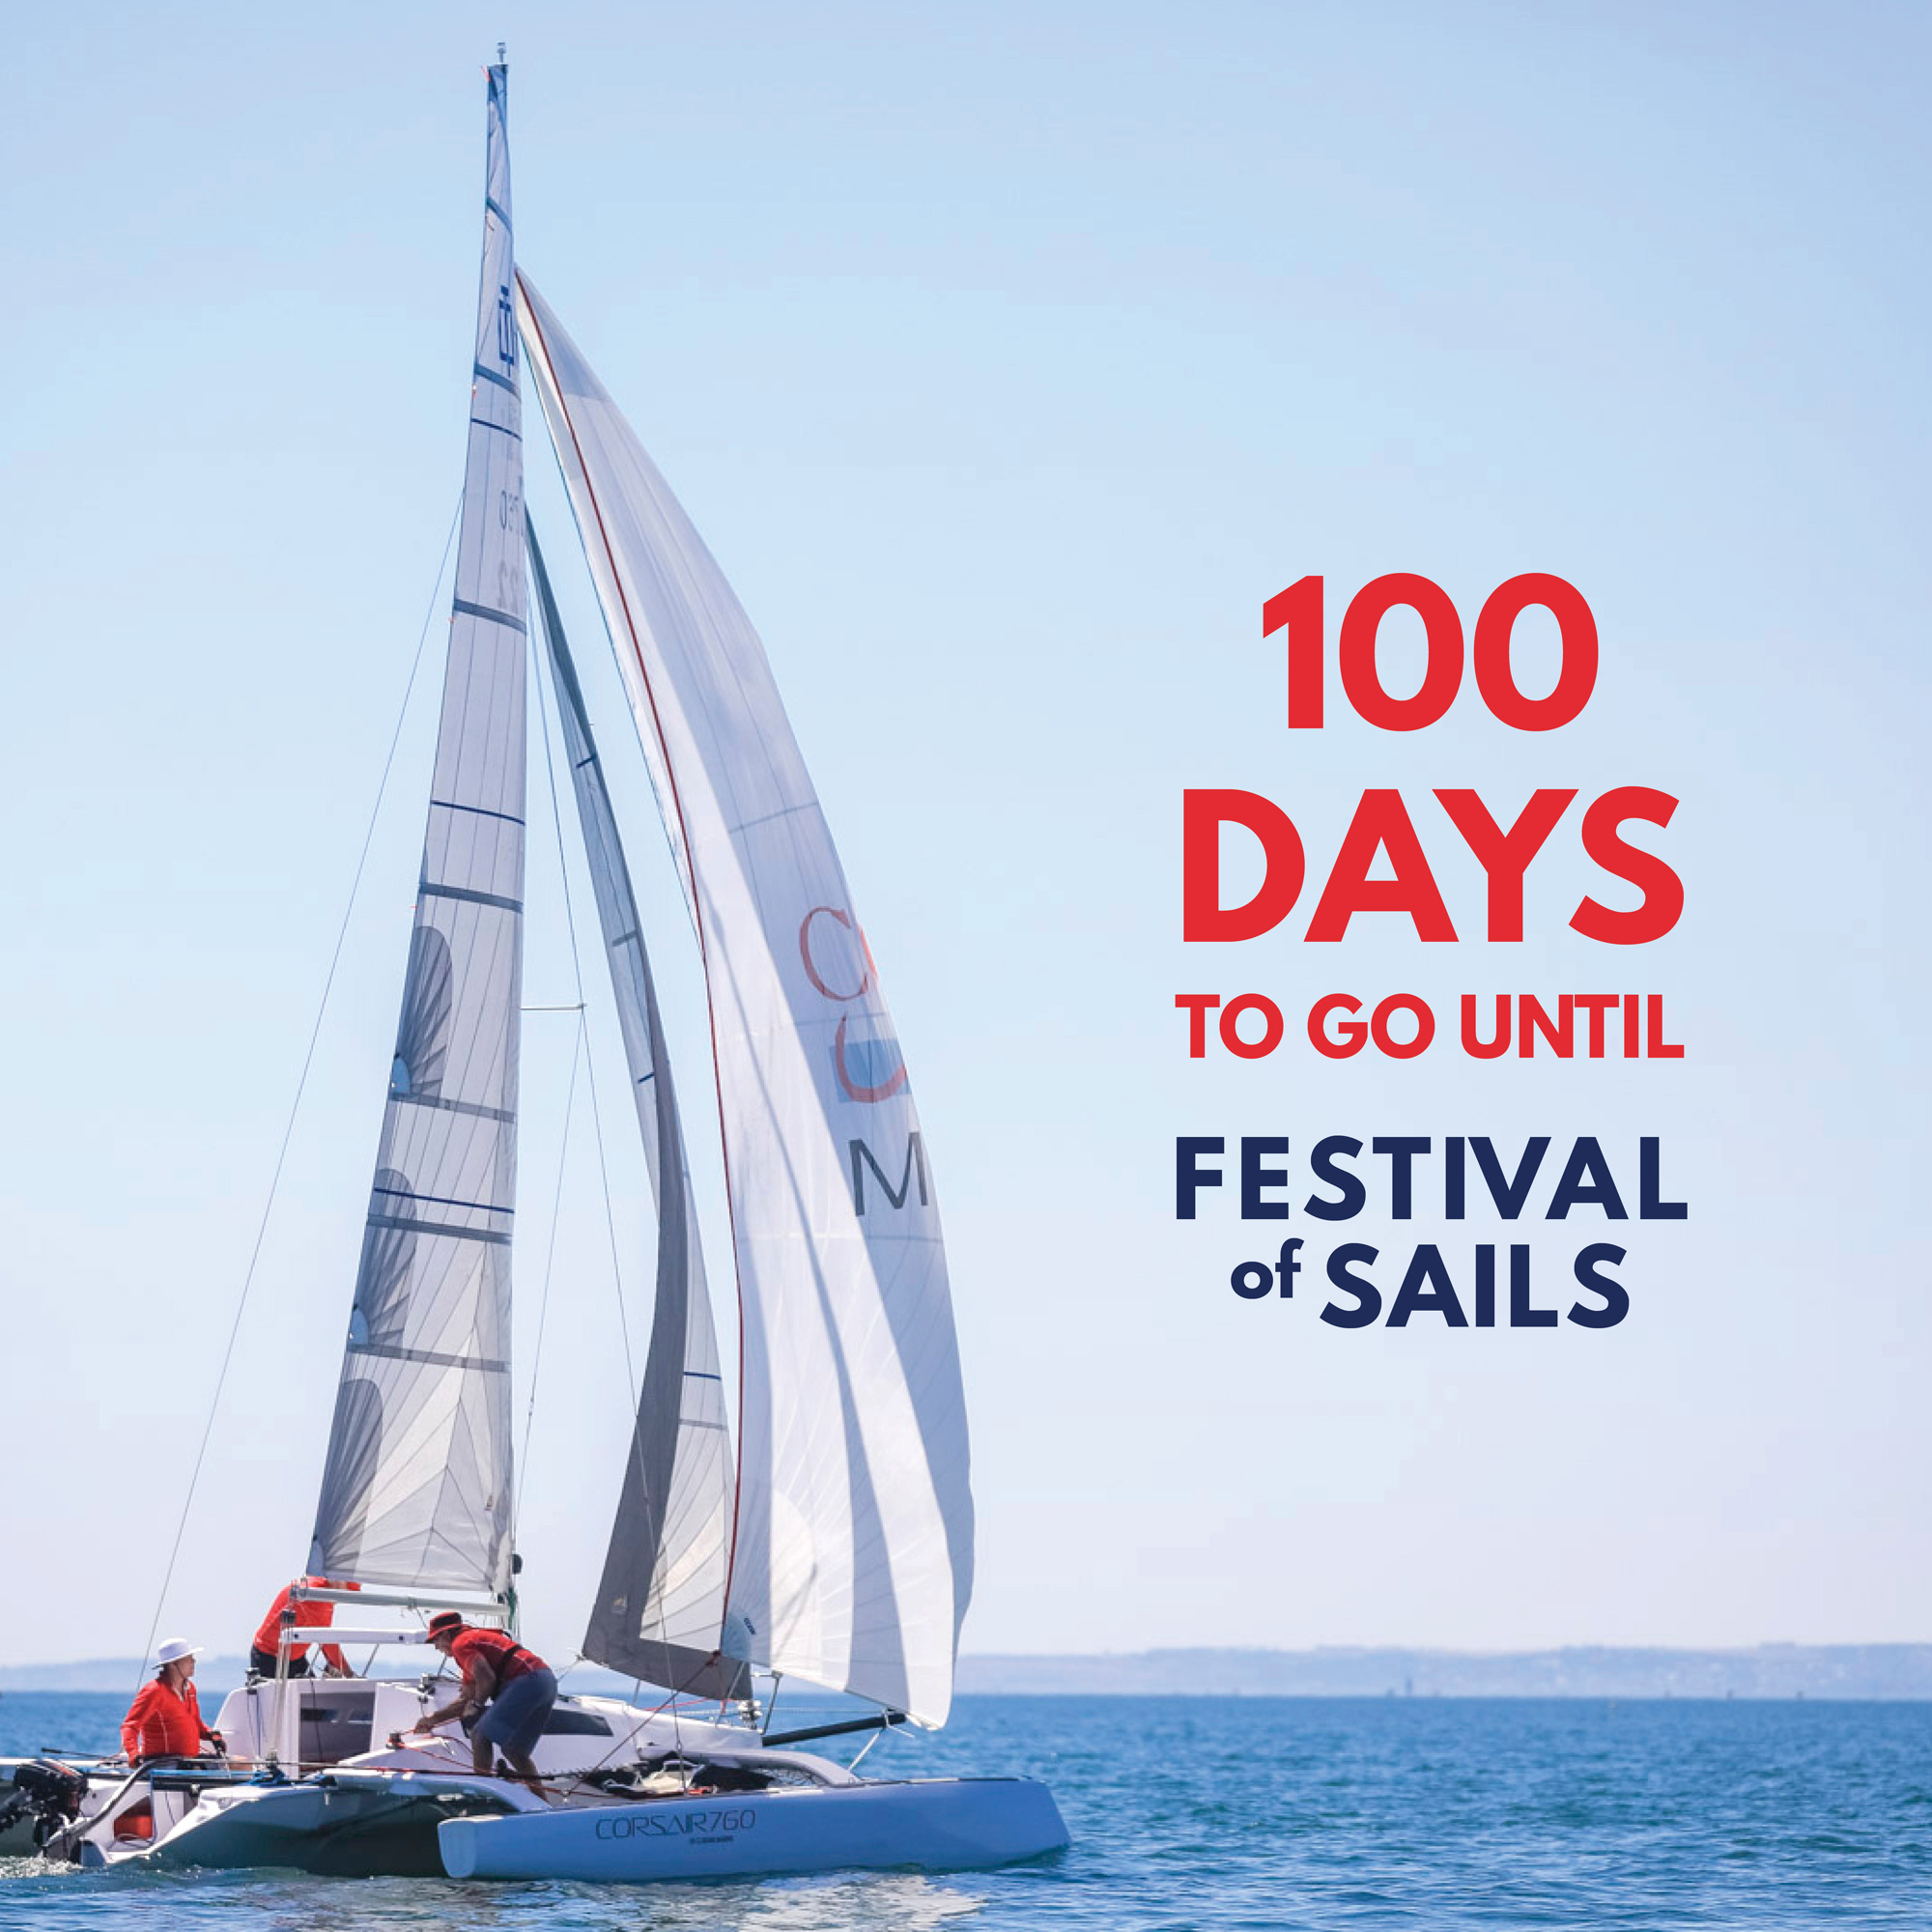 entries climbing with 100 days to go until the 2019 festival of